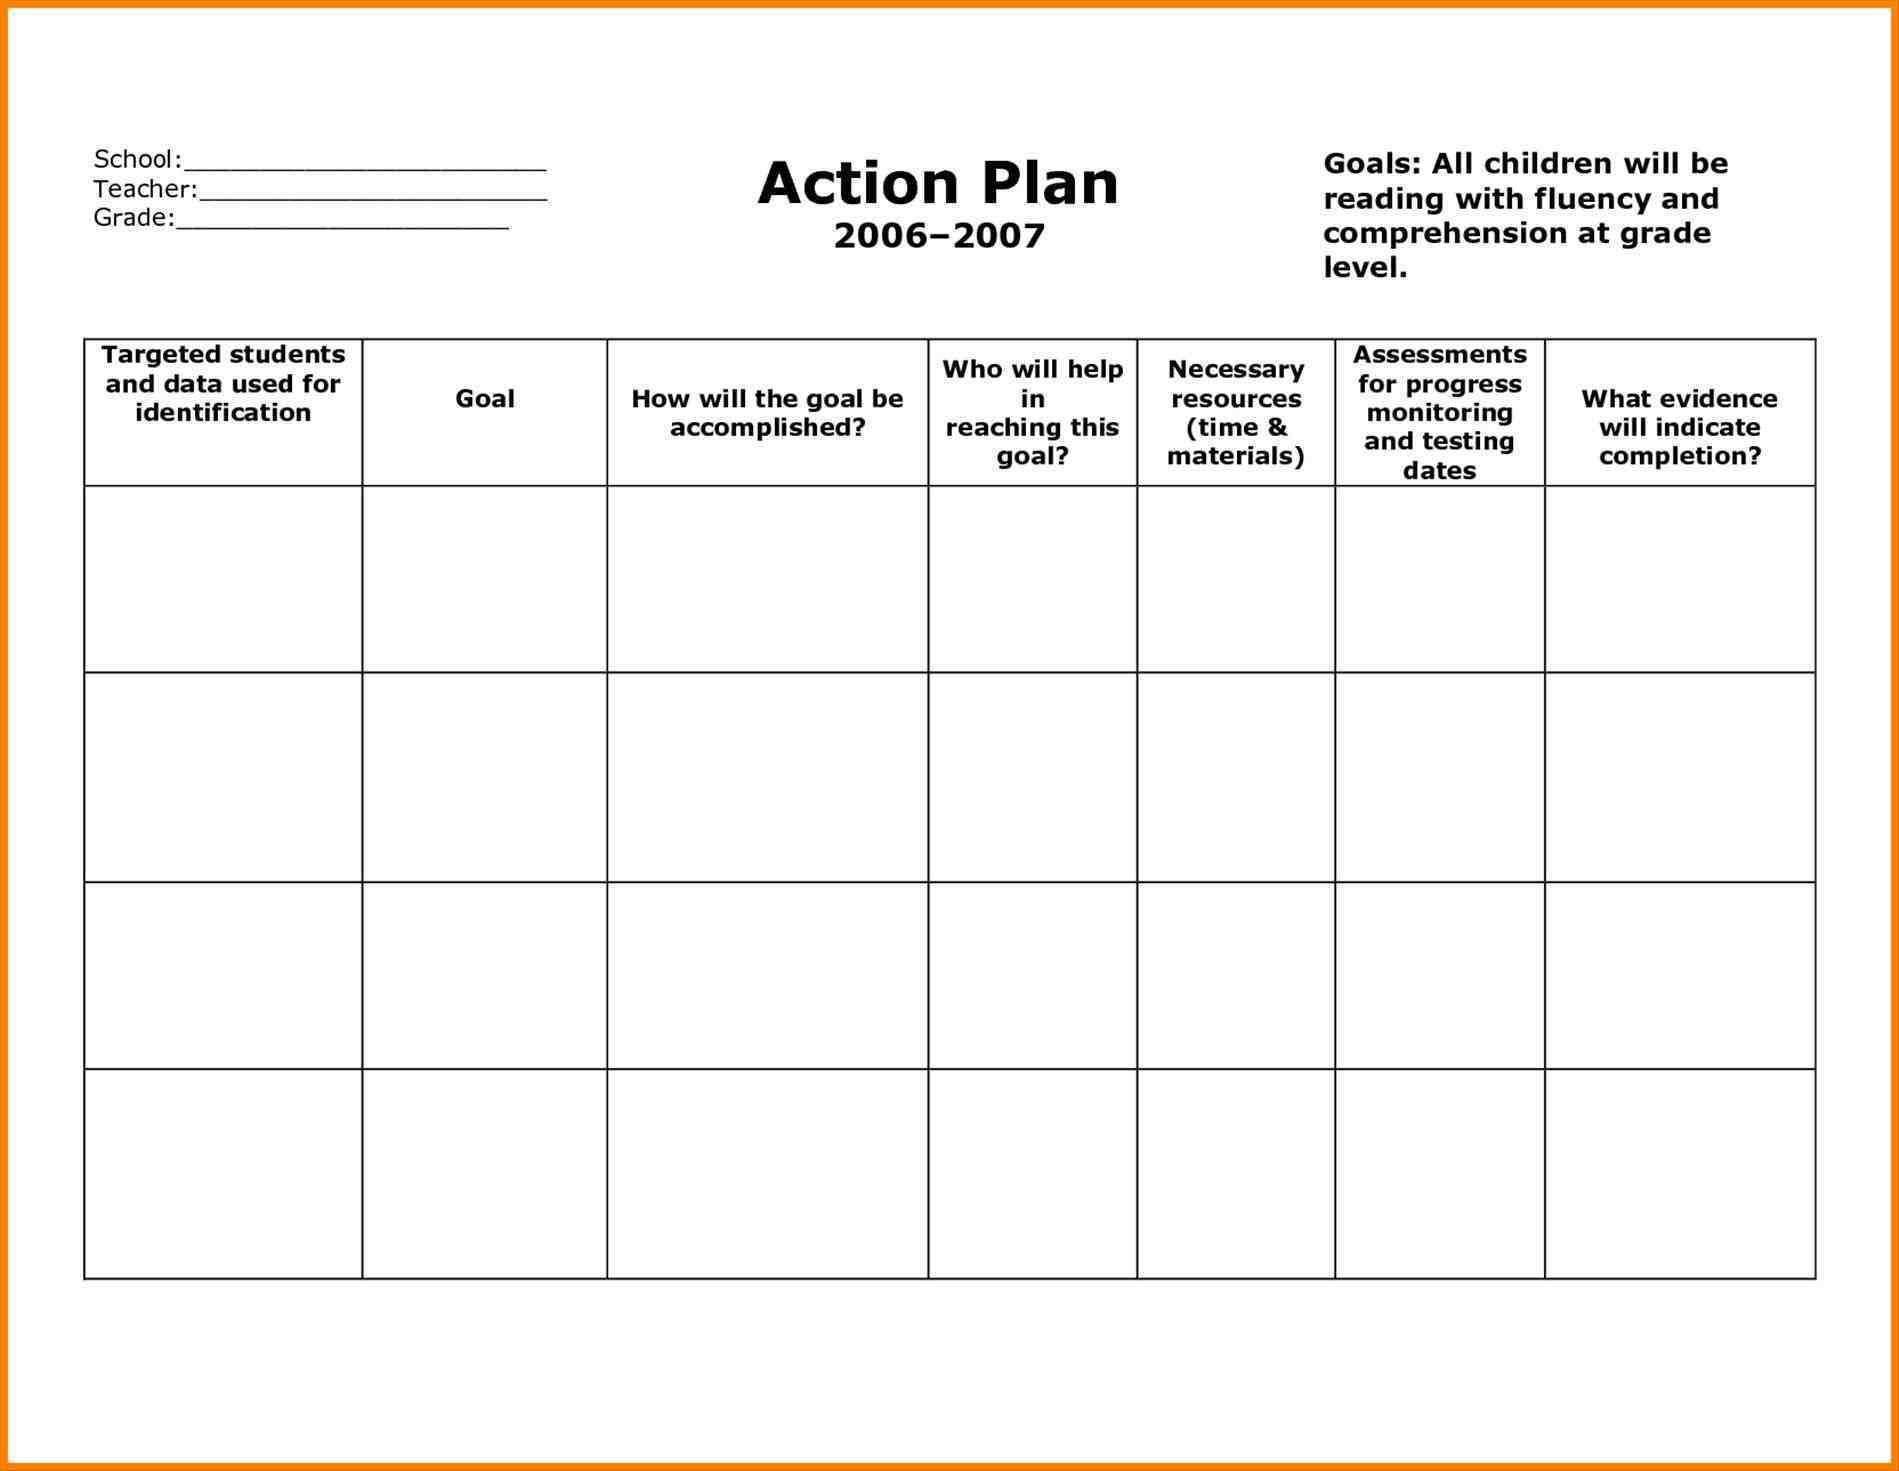 Strategic Planning Report Template Action plan template